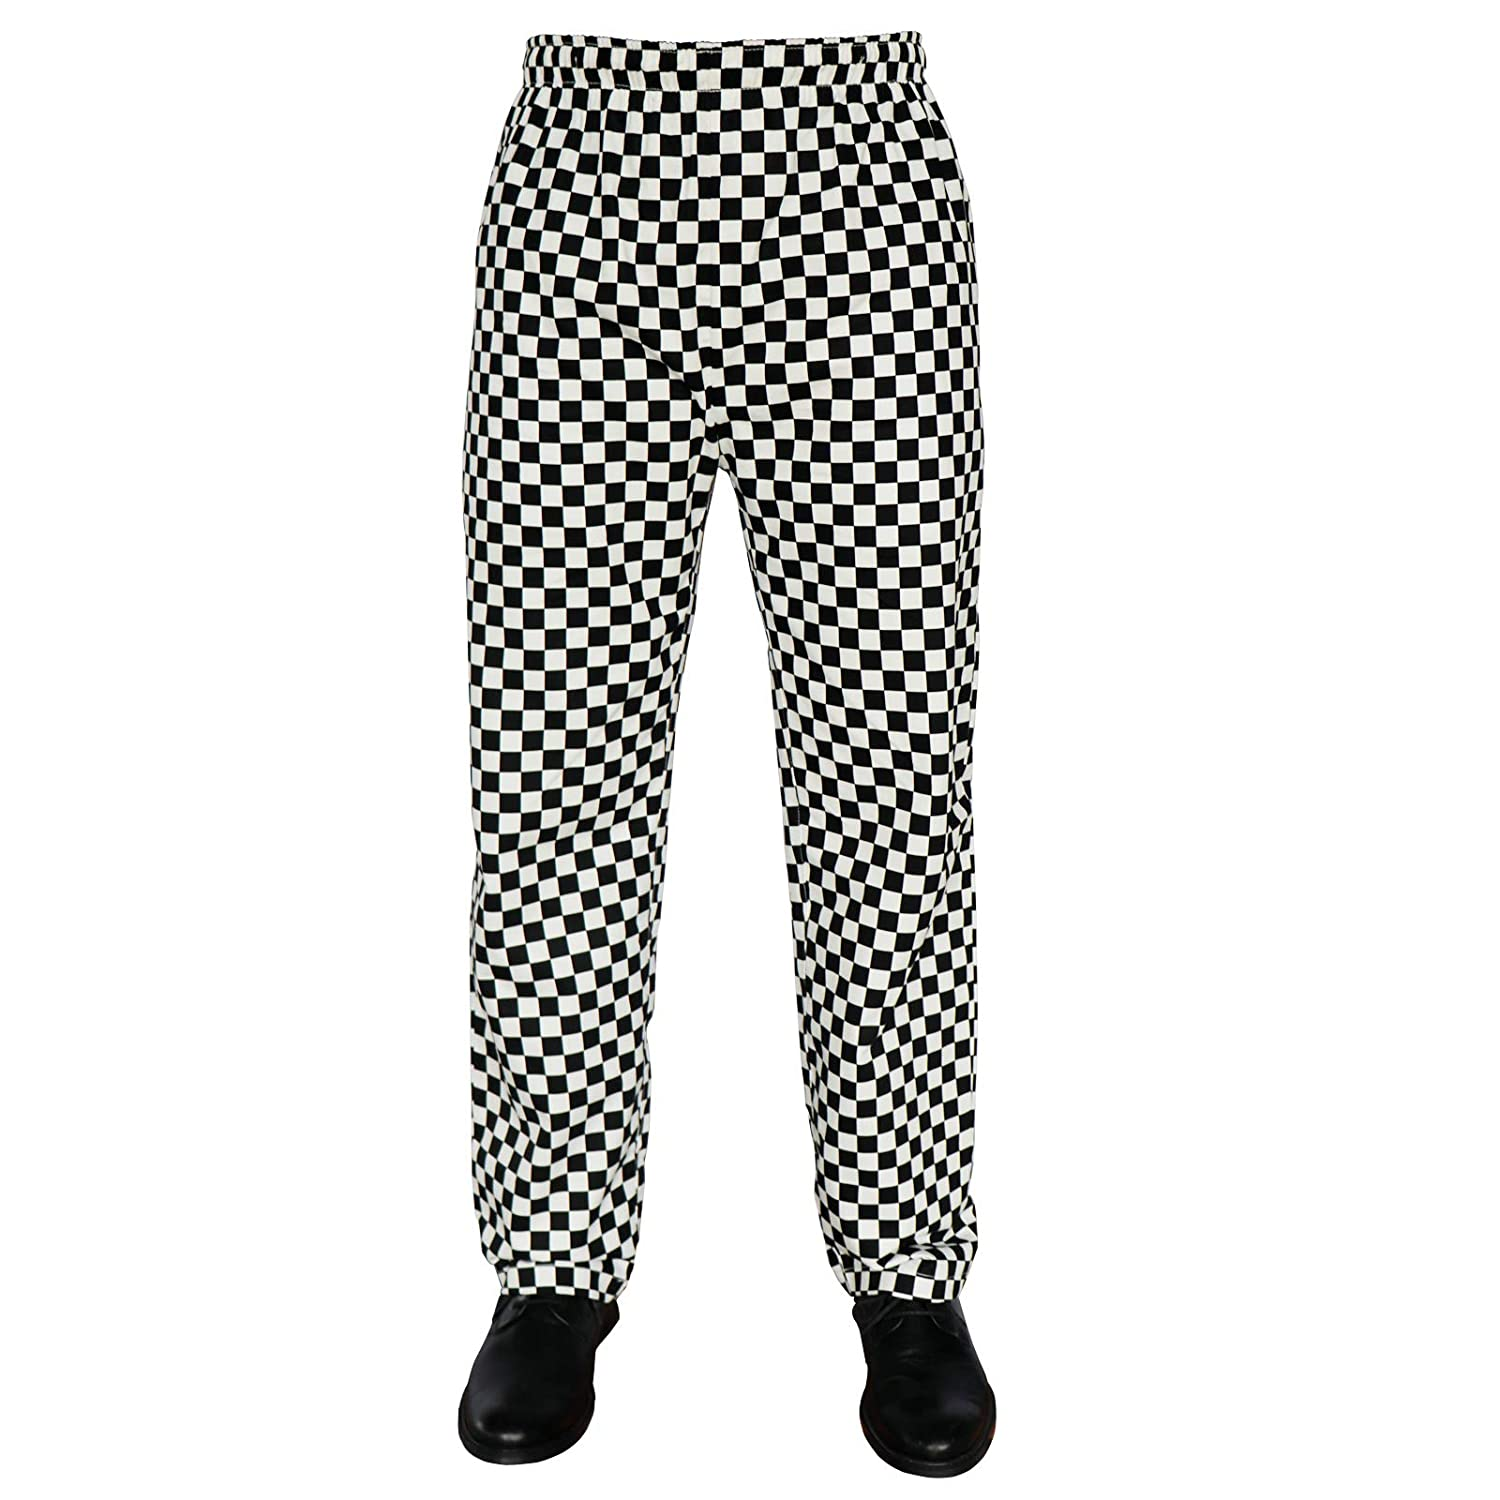 PH Chess Board Trousers Black & White Check Excellent Quality Elasticated Waist Unisex Design Check Trousers